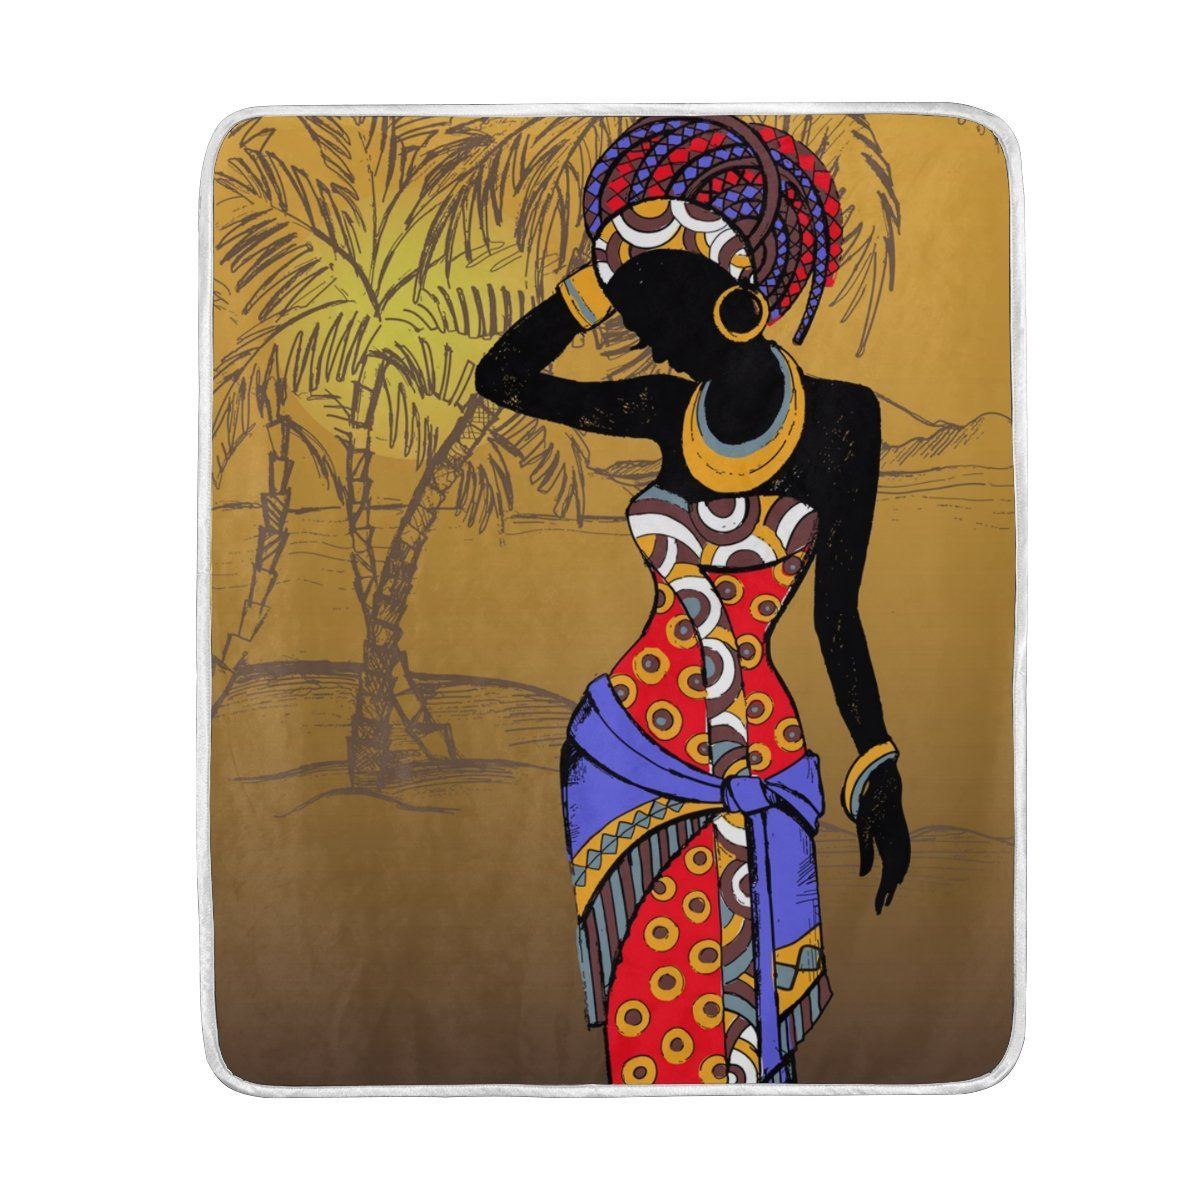 My Little Nest Hand Drawn Beautiful African Woman Soft Throw Blanket Lightweight MicrofiberCozy Warm Blankets Everyday Use for Bed Couch Sofa 50'' x 60''